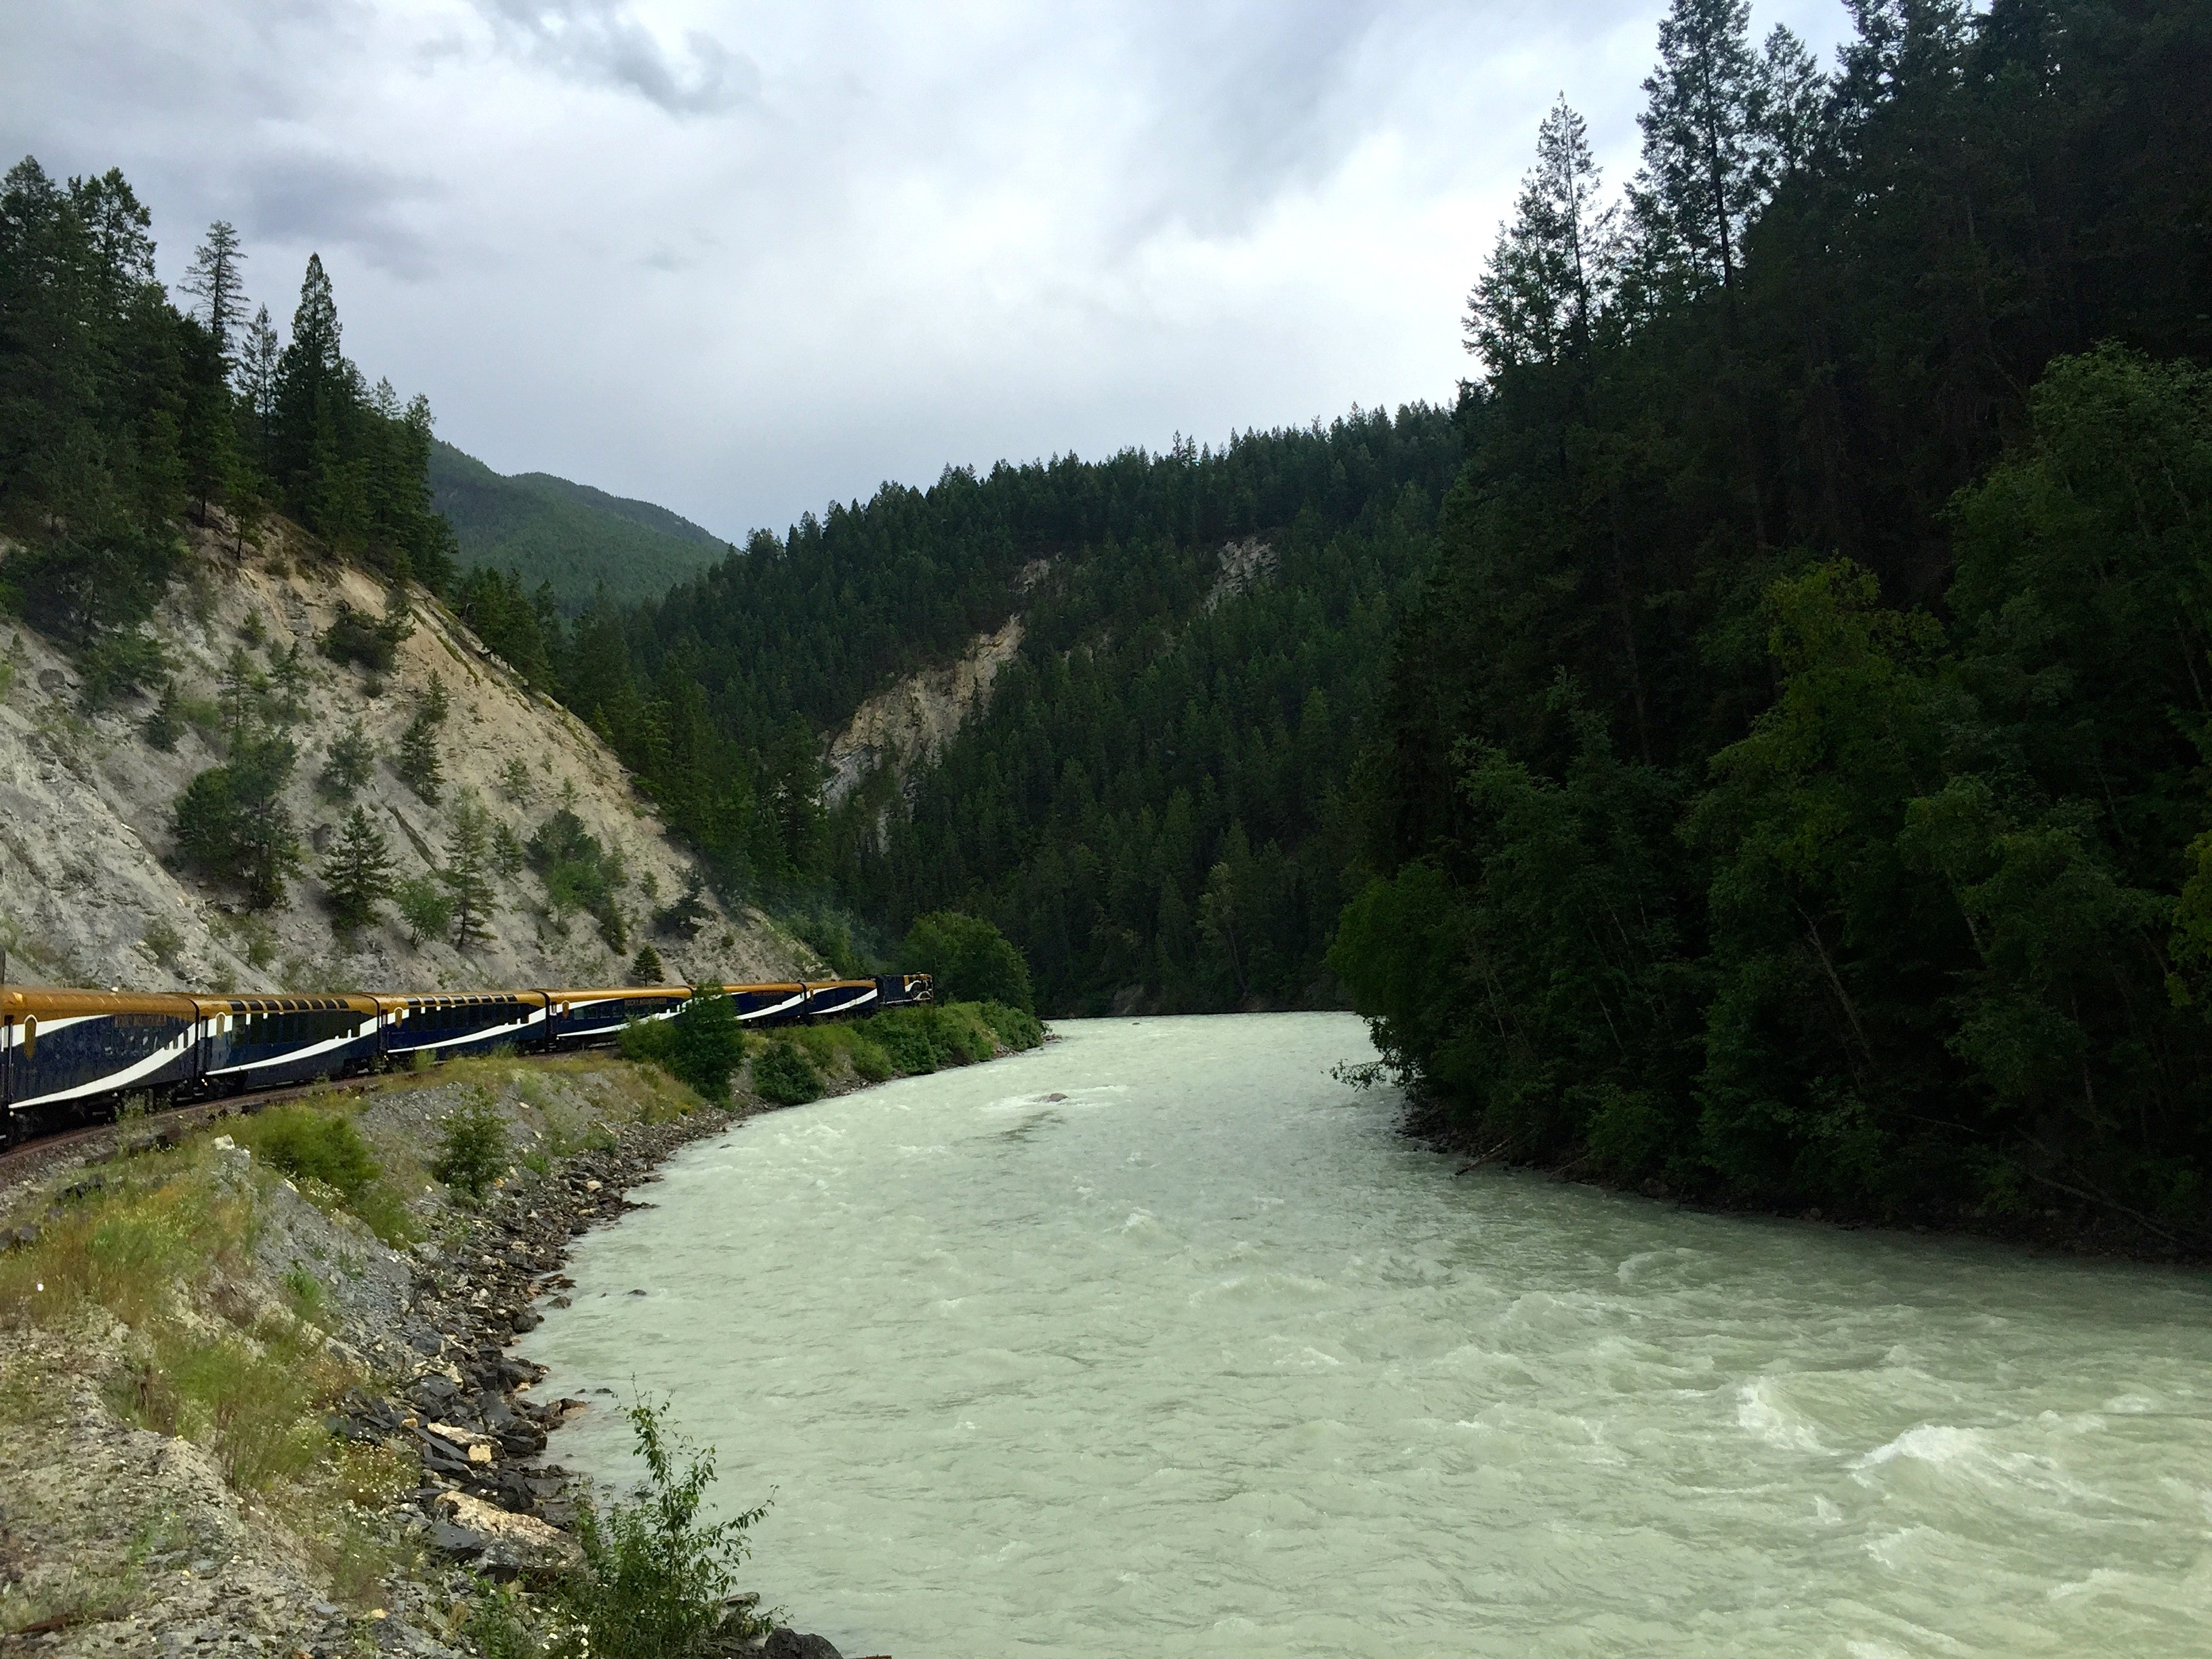 Passage to the West, Vancouver to Banff by Rail